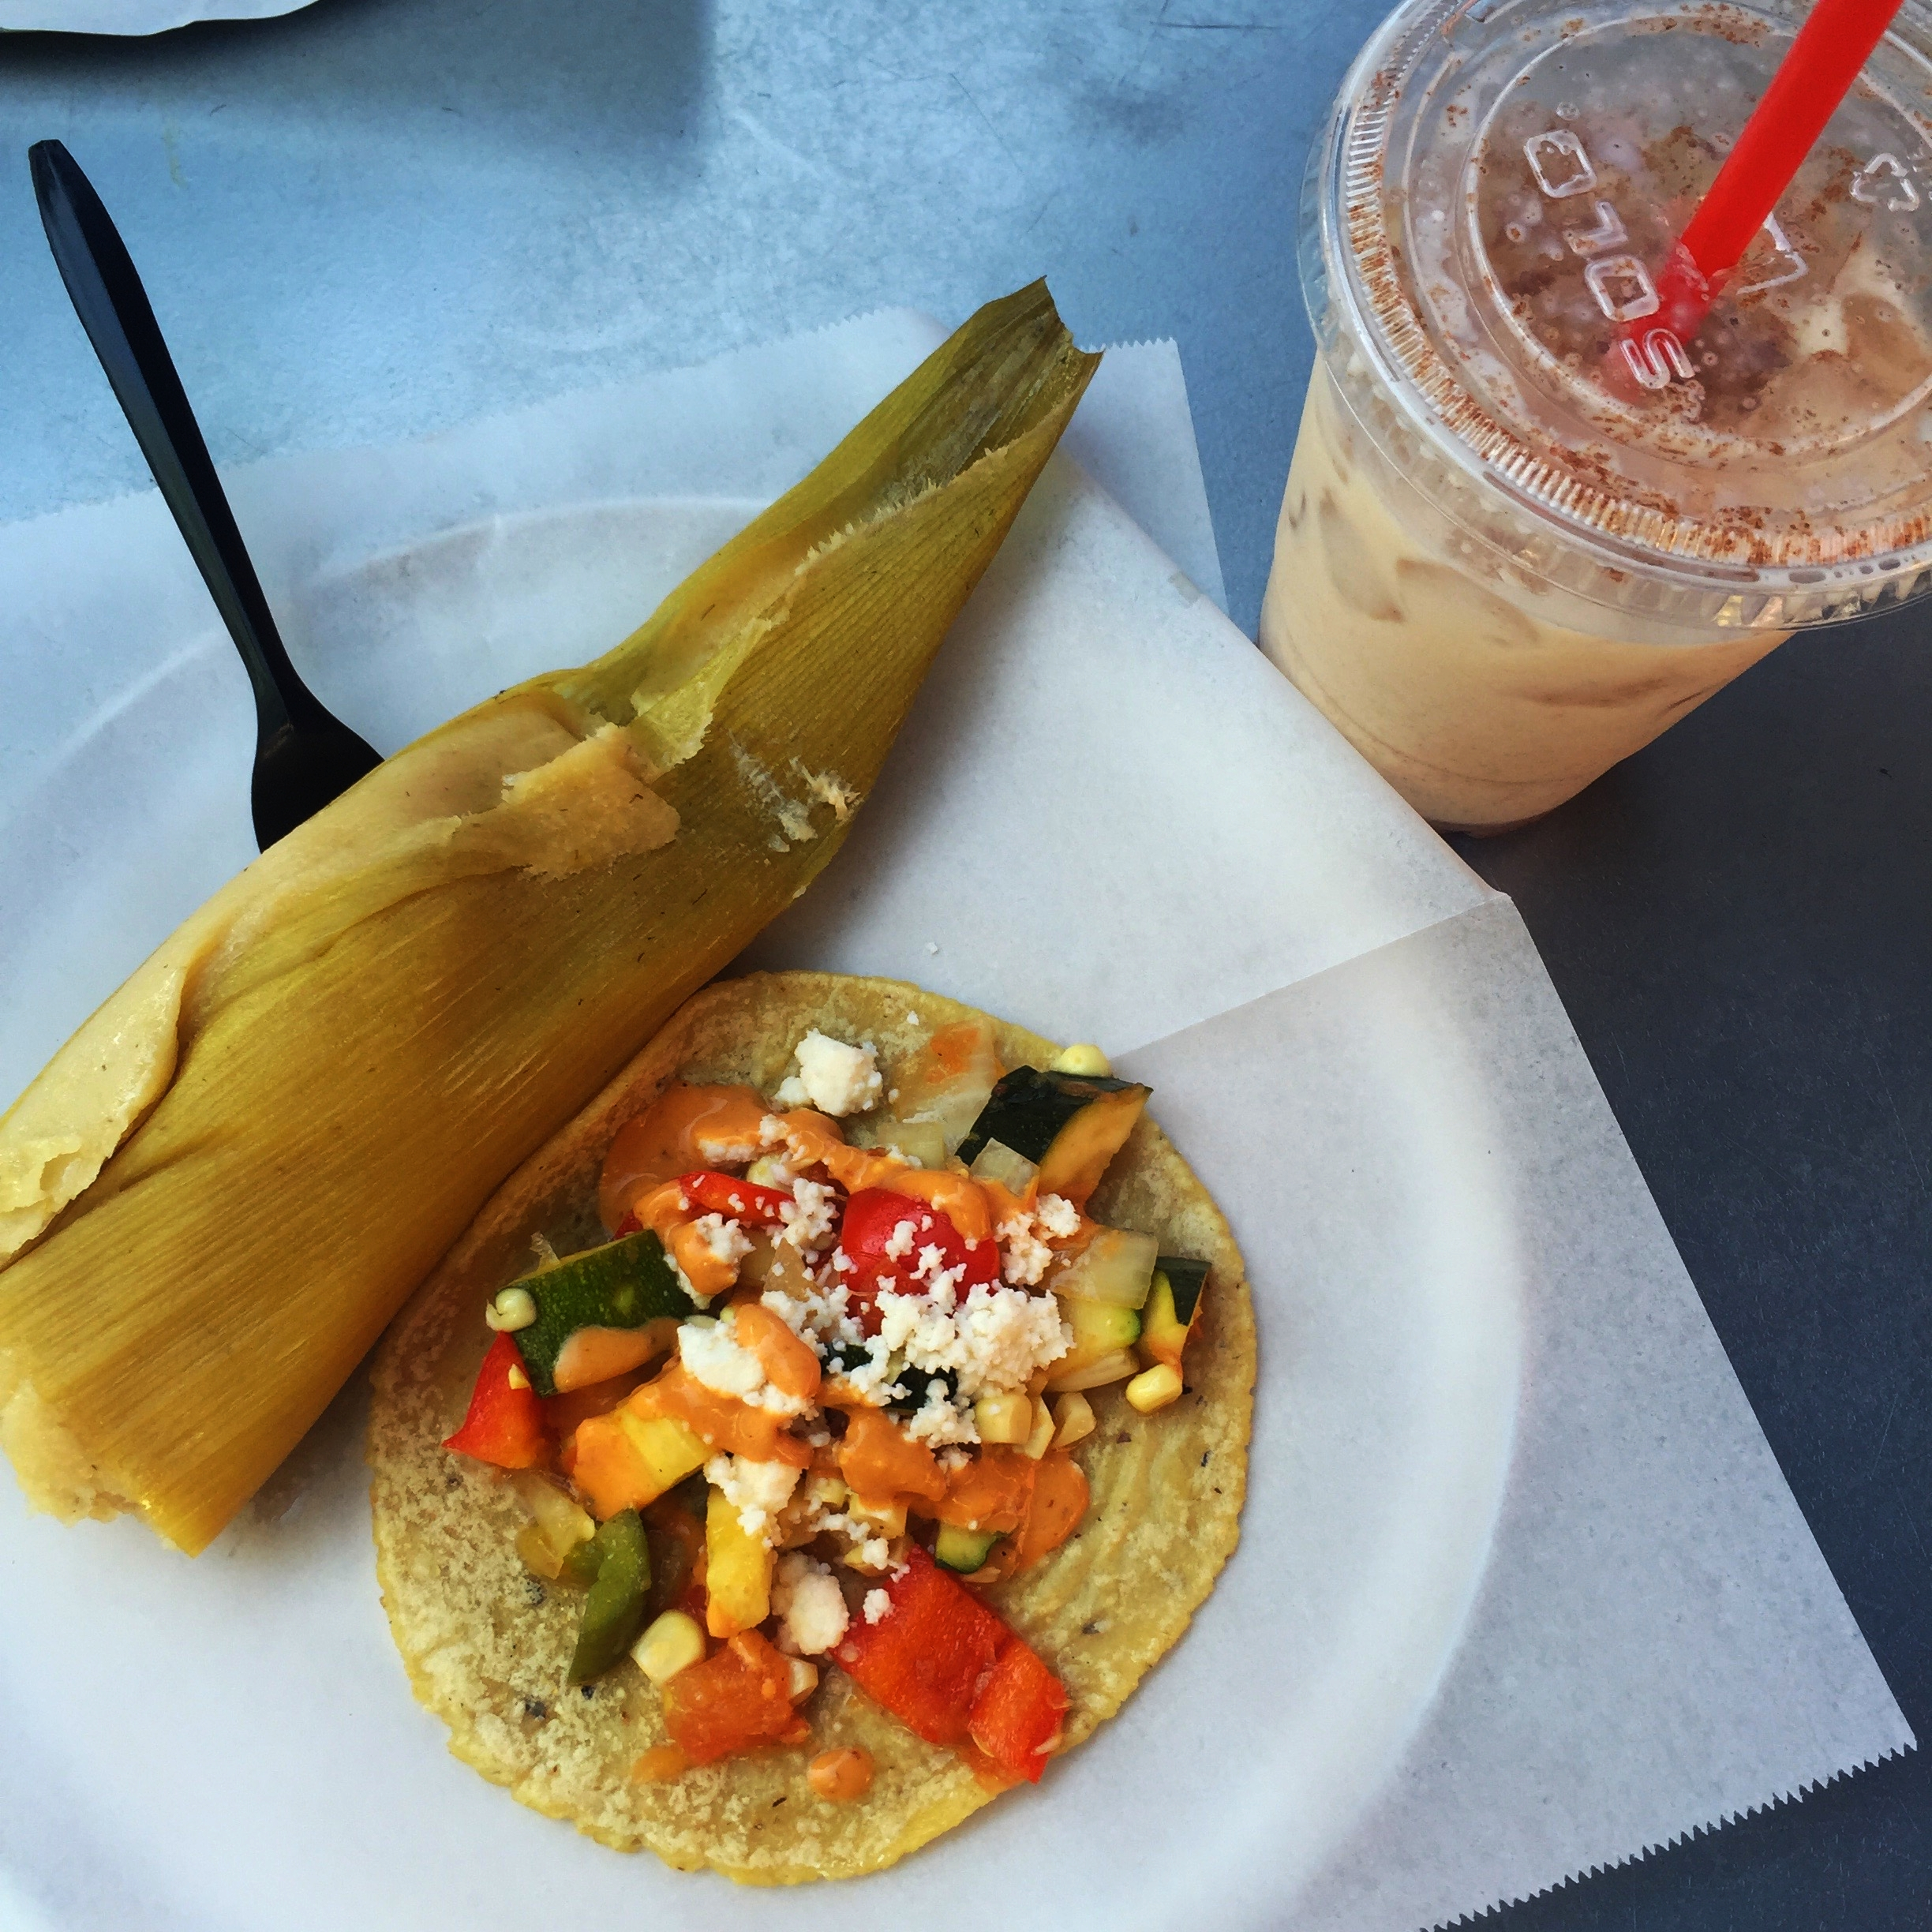 Elote tamale and calabacitas taco